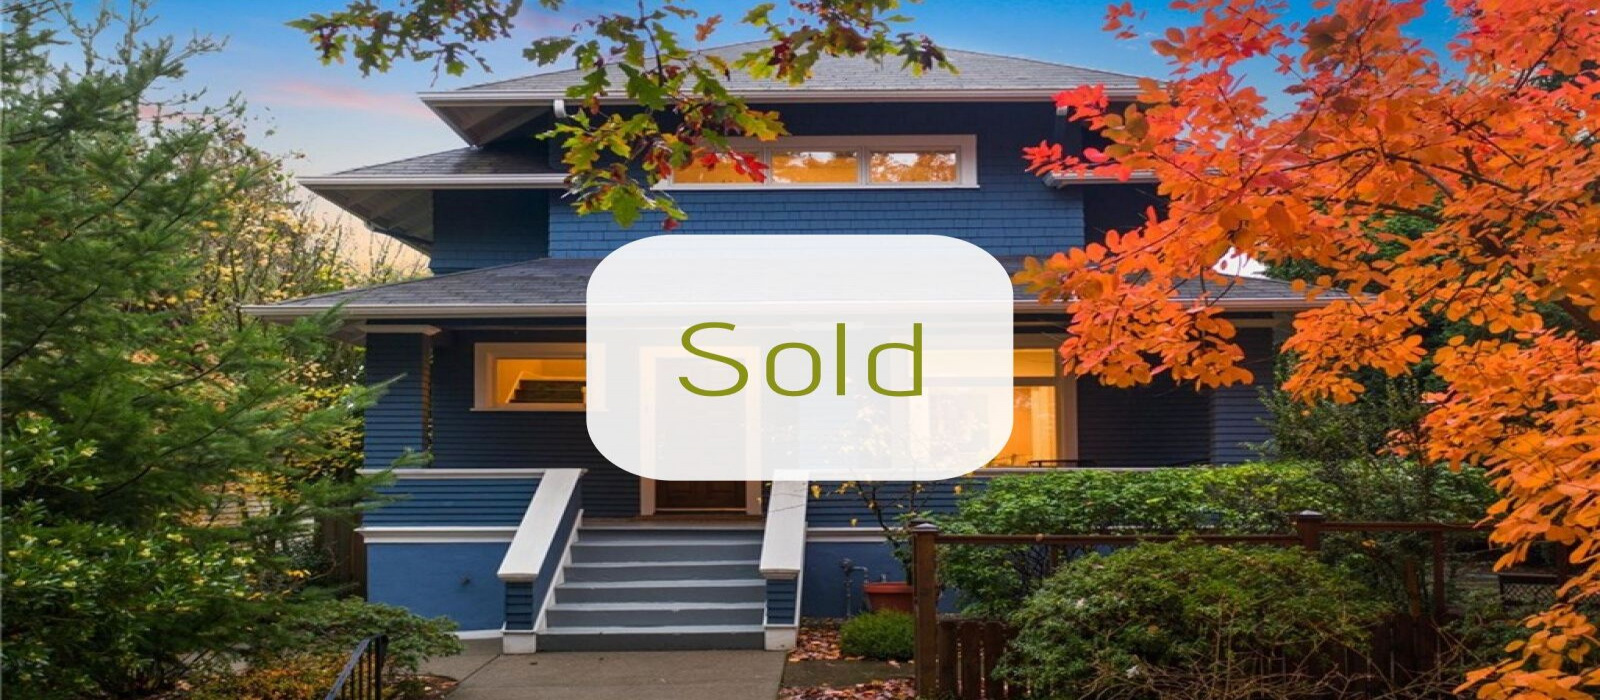 2212 2nd Ave W, Seattle, Washington 98119, 4 Bedrooms Bedrooms, ,4 BathroomsBathrooms,Condominium,Sold,2nd Ave W,1043